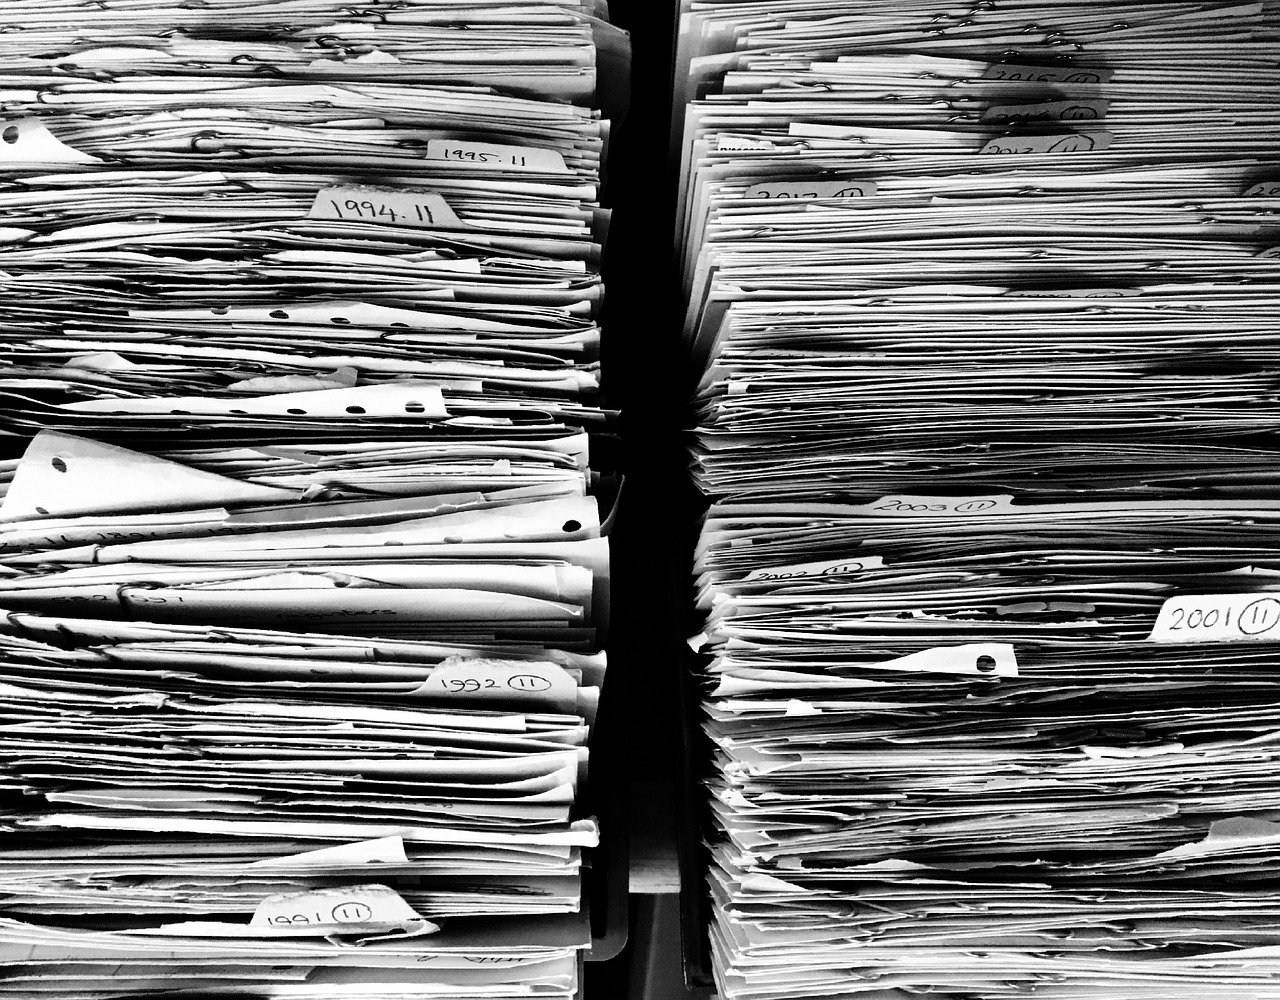 Two stack of paper and files representing too much work